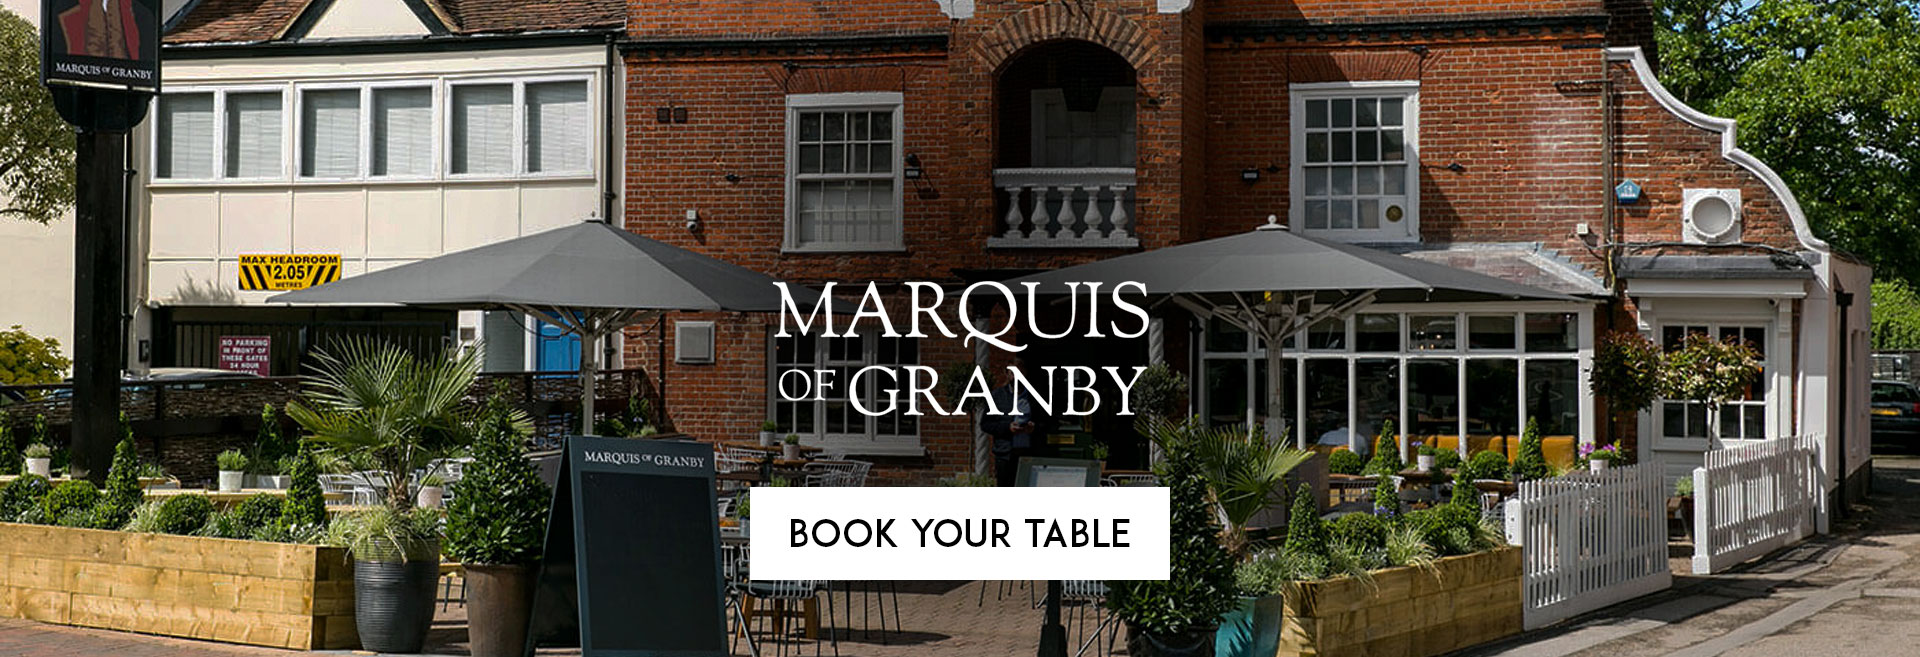 Book Your Table at The Marquis of Granby